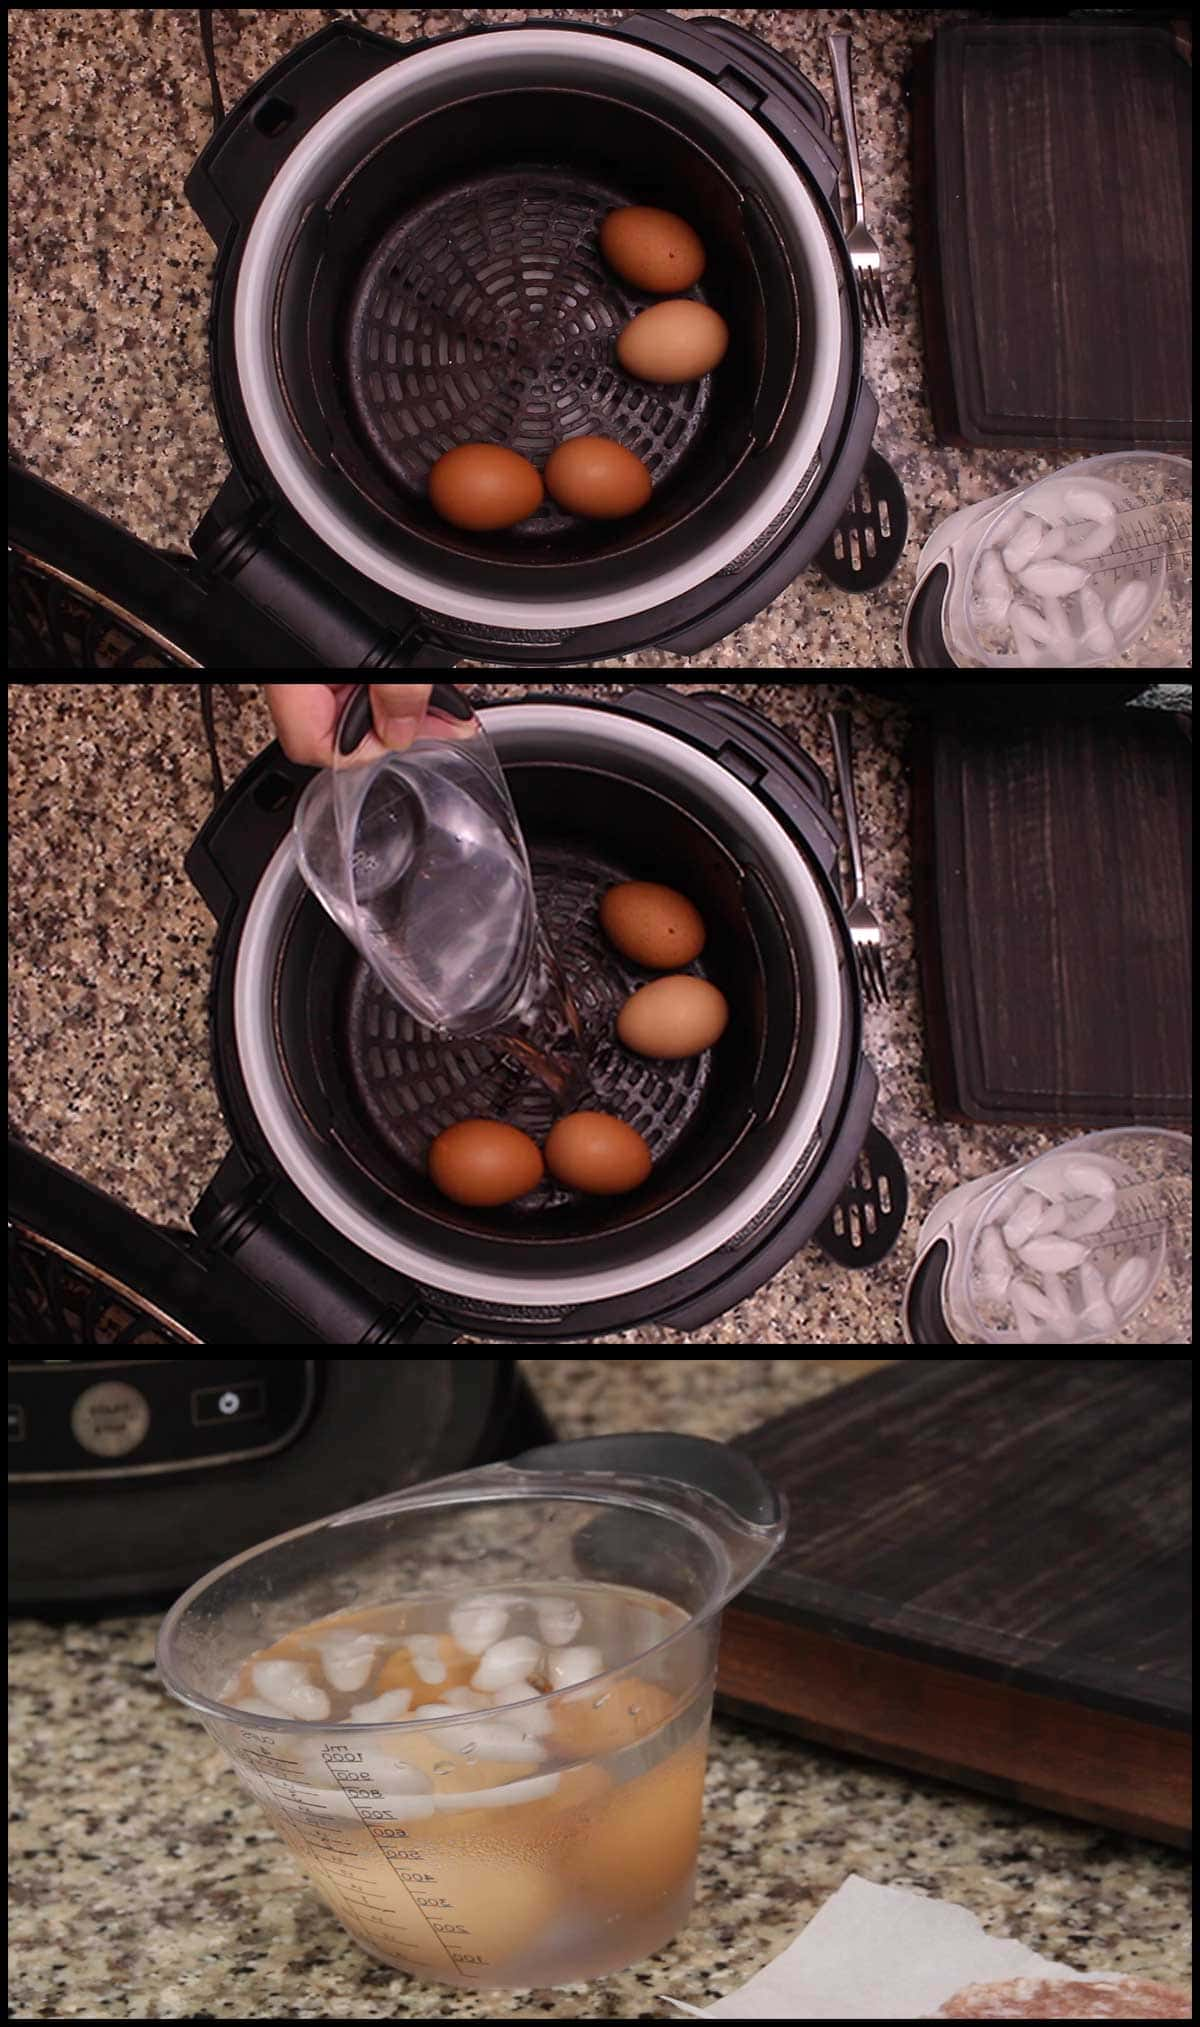 Putting the eggs in the basket to pressure cook and then into an ice bath